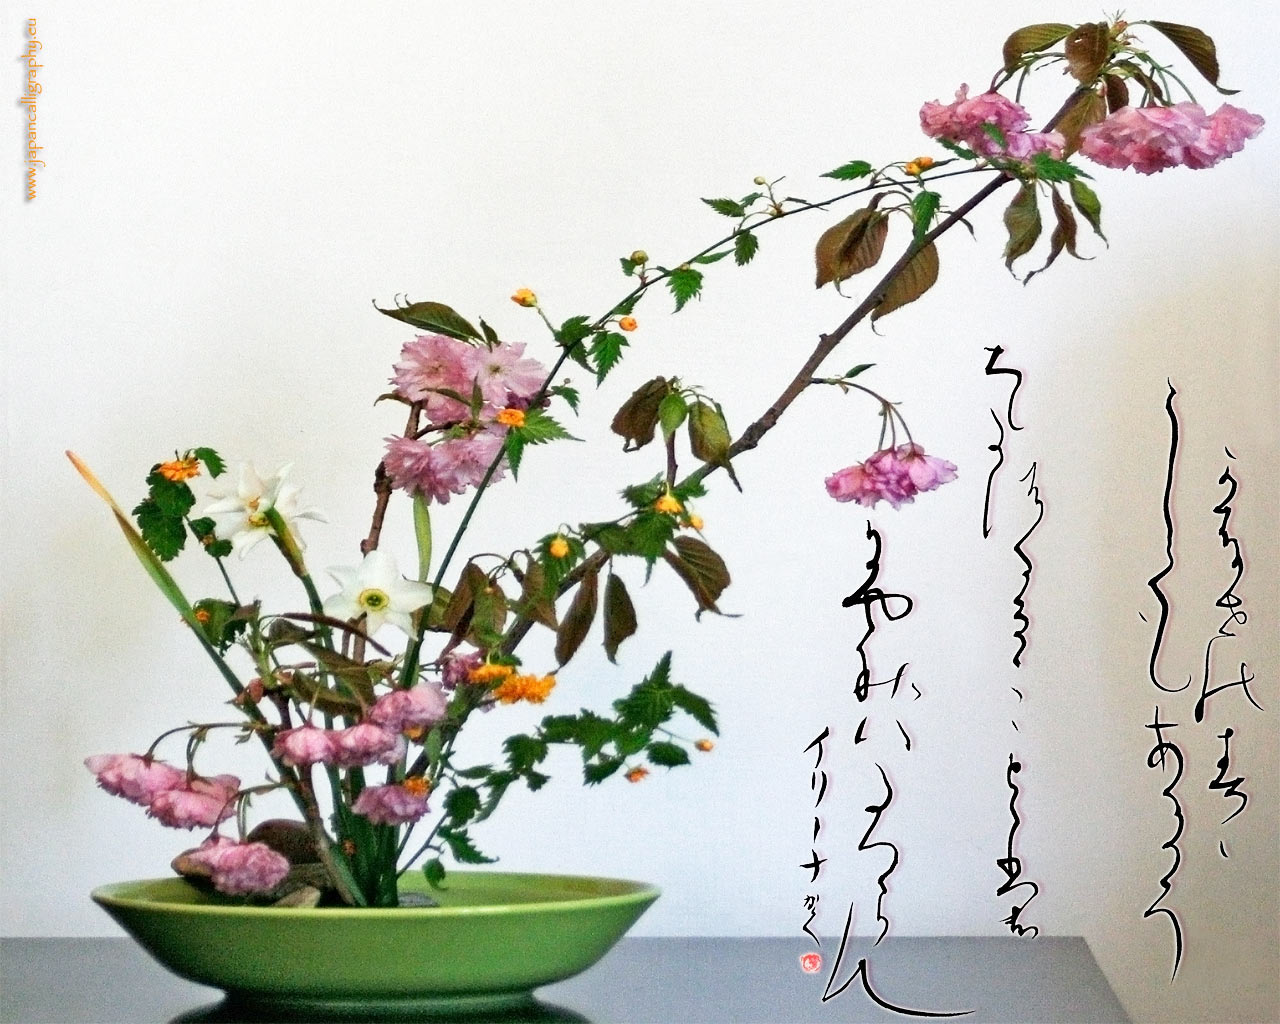 Japanese calligraphy desktop wallpapers 1280 x 1024 px Ikebana